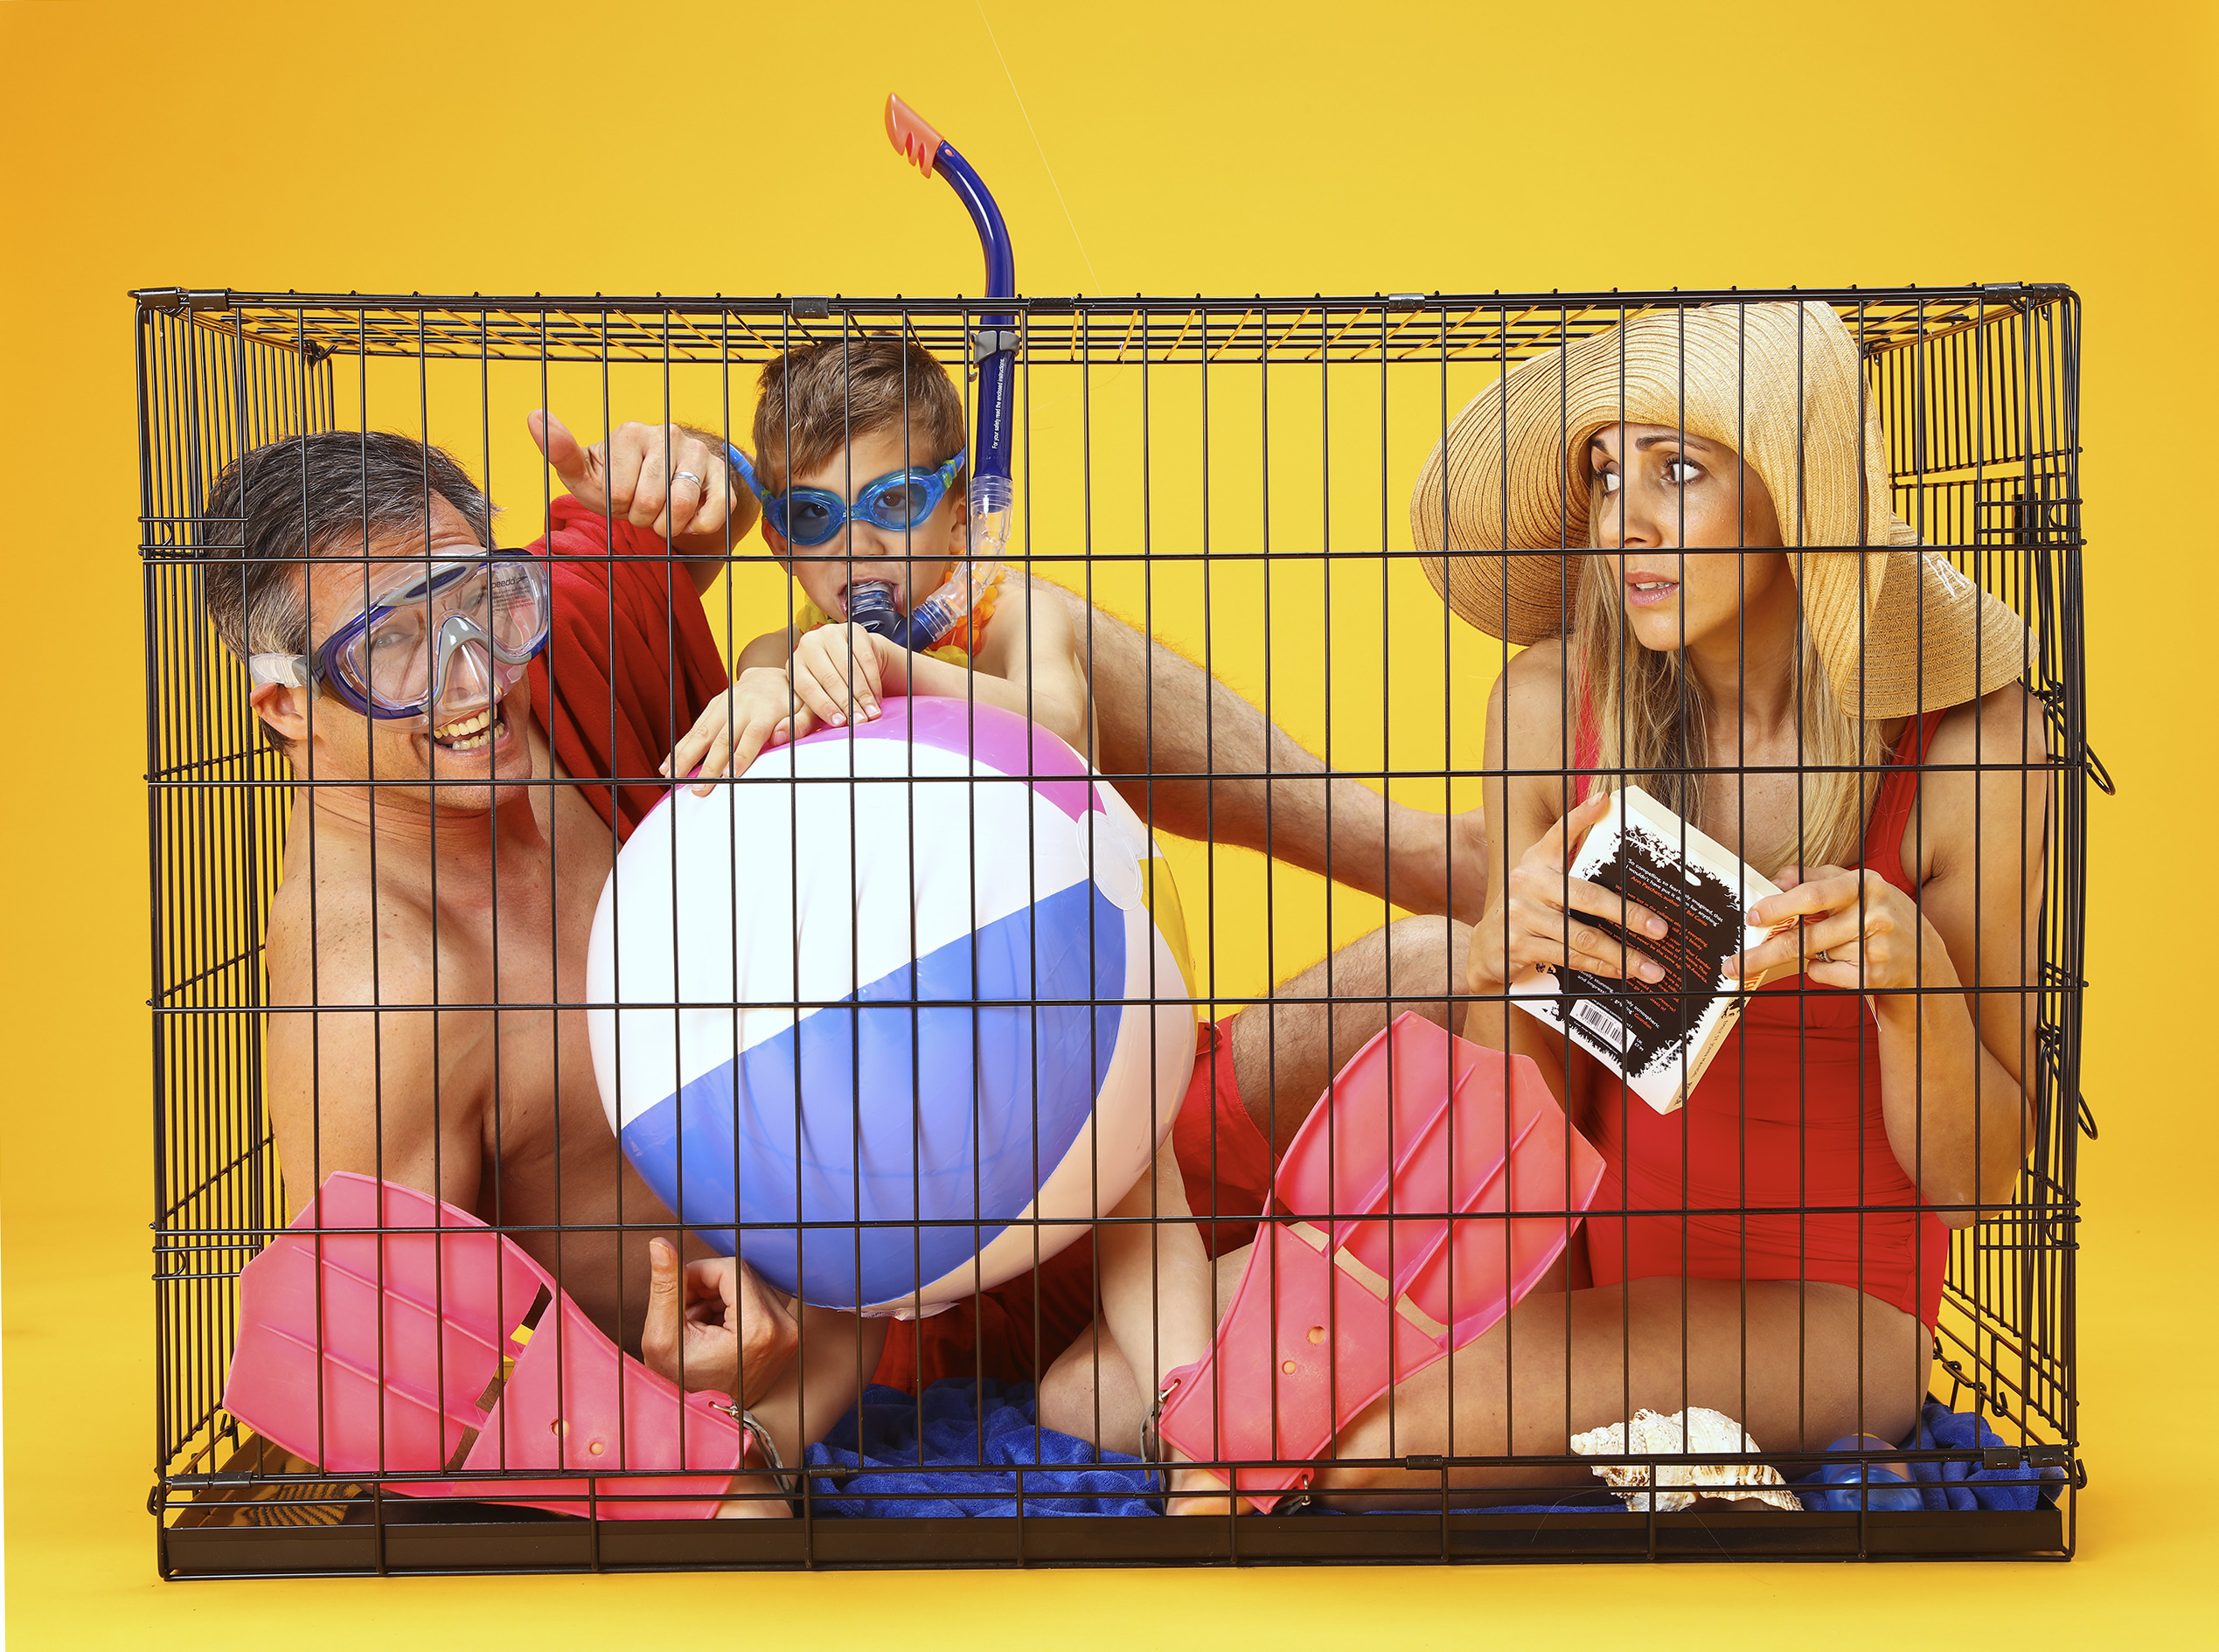 Would you spend your holiday in a cage?